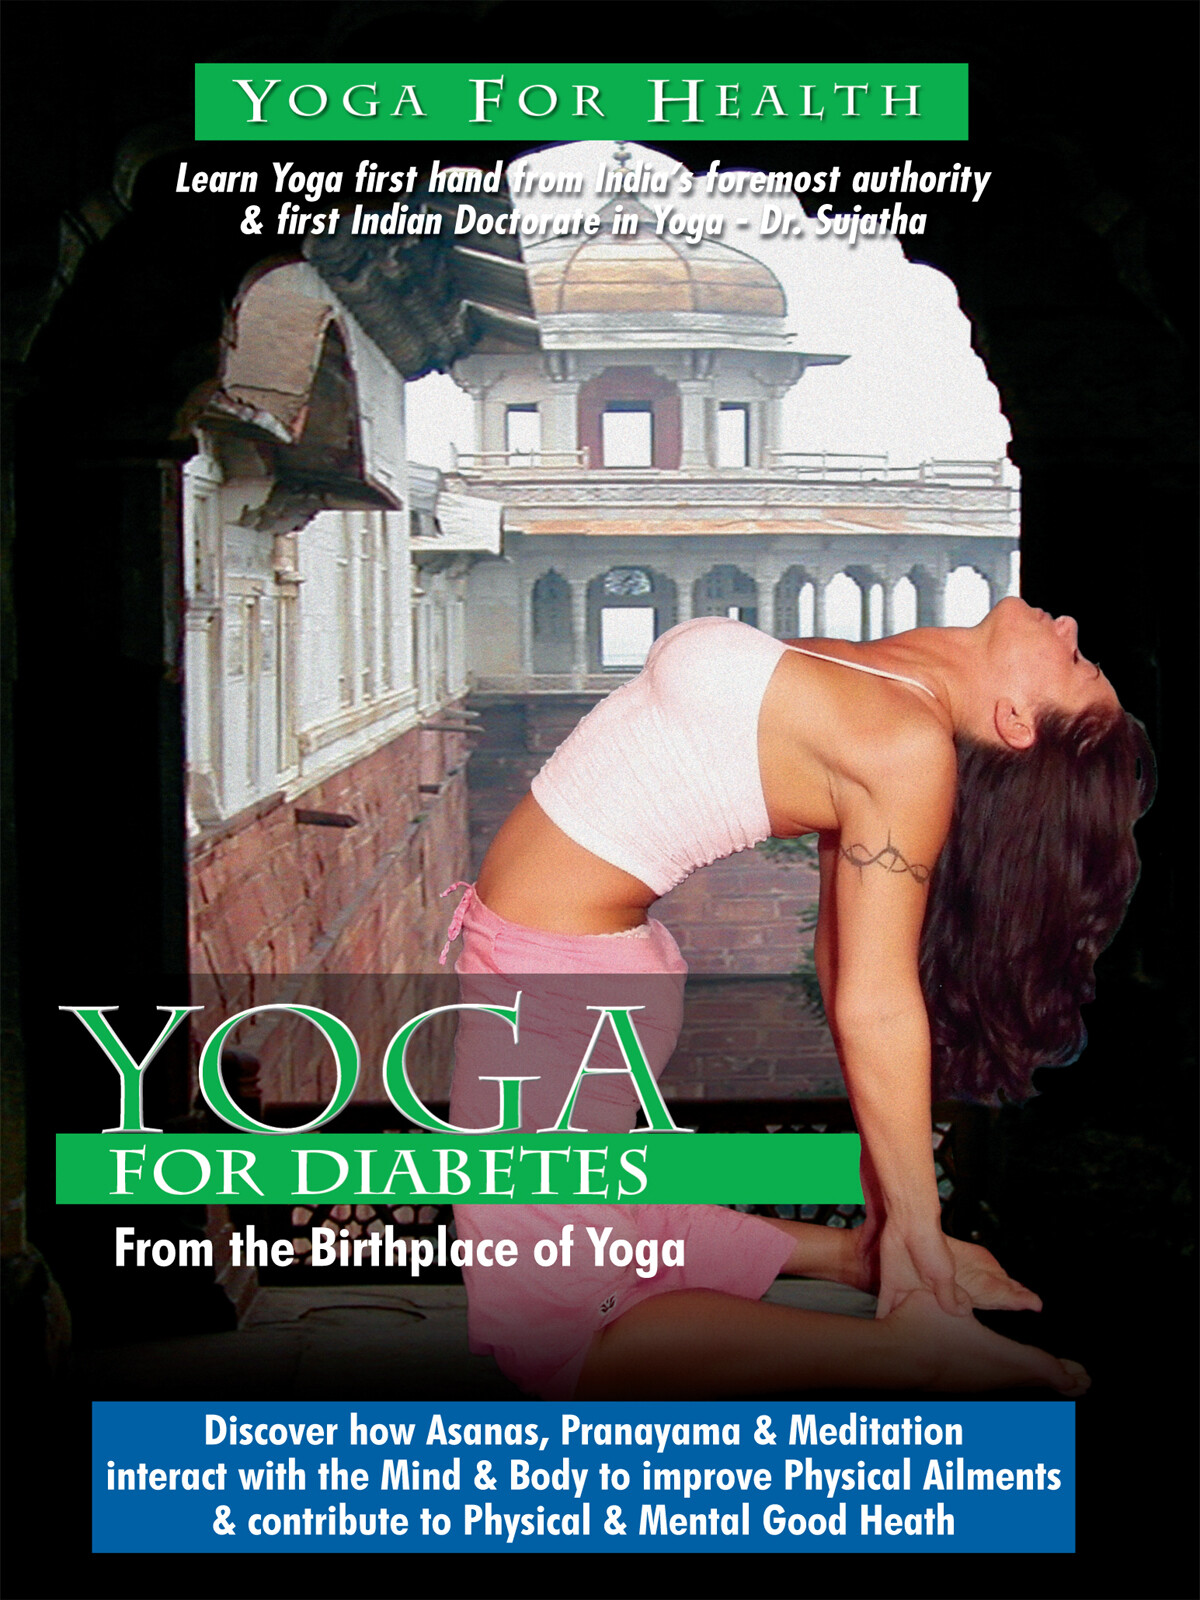 A7033 - Yoga For Health For Diabetes